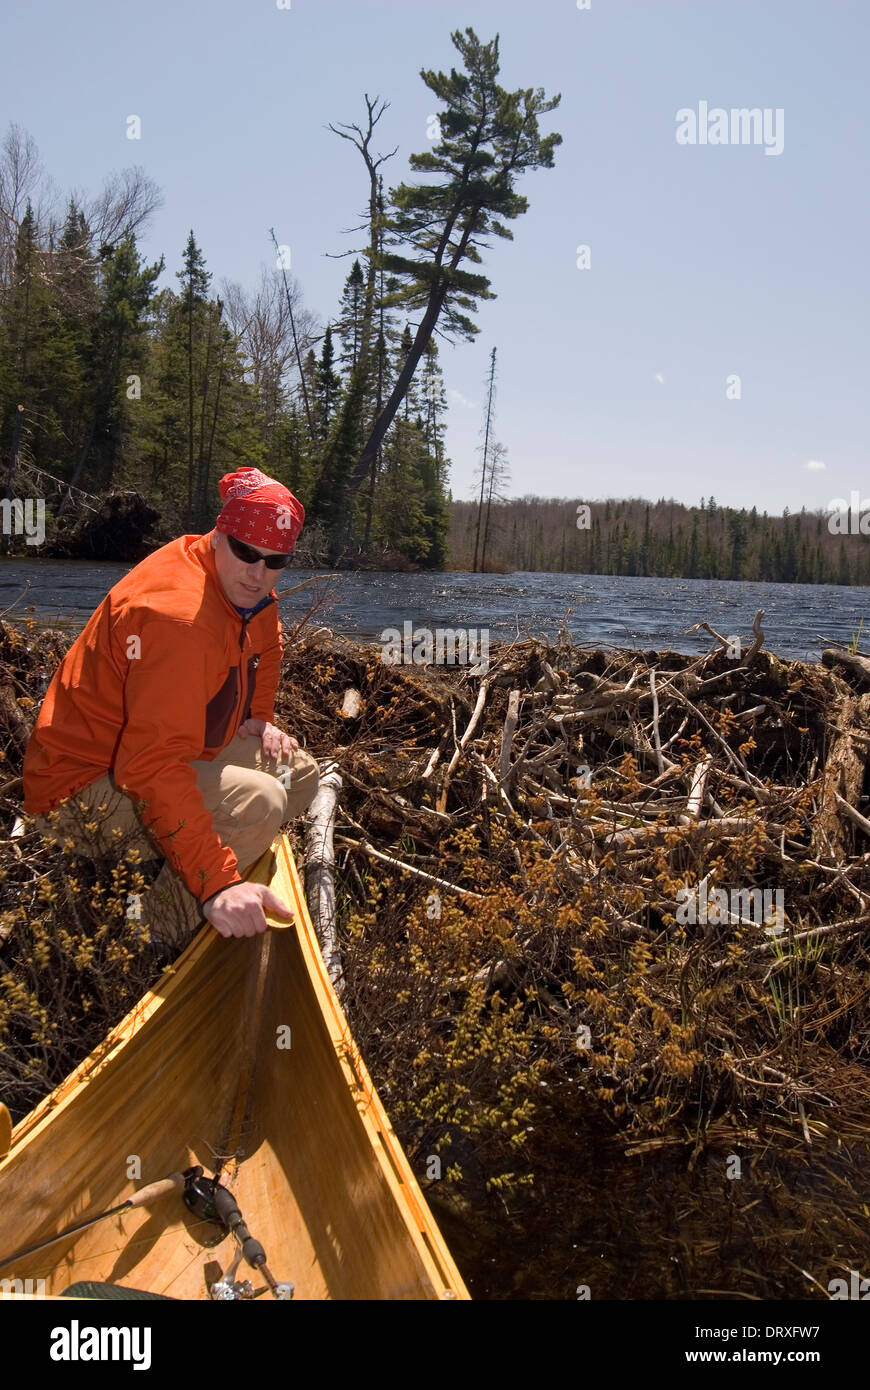 A man portaging a canoe to a calm lake in Northern Ontario. - Stock Image